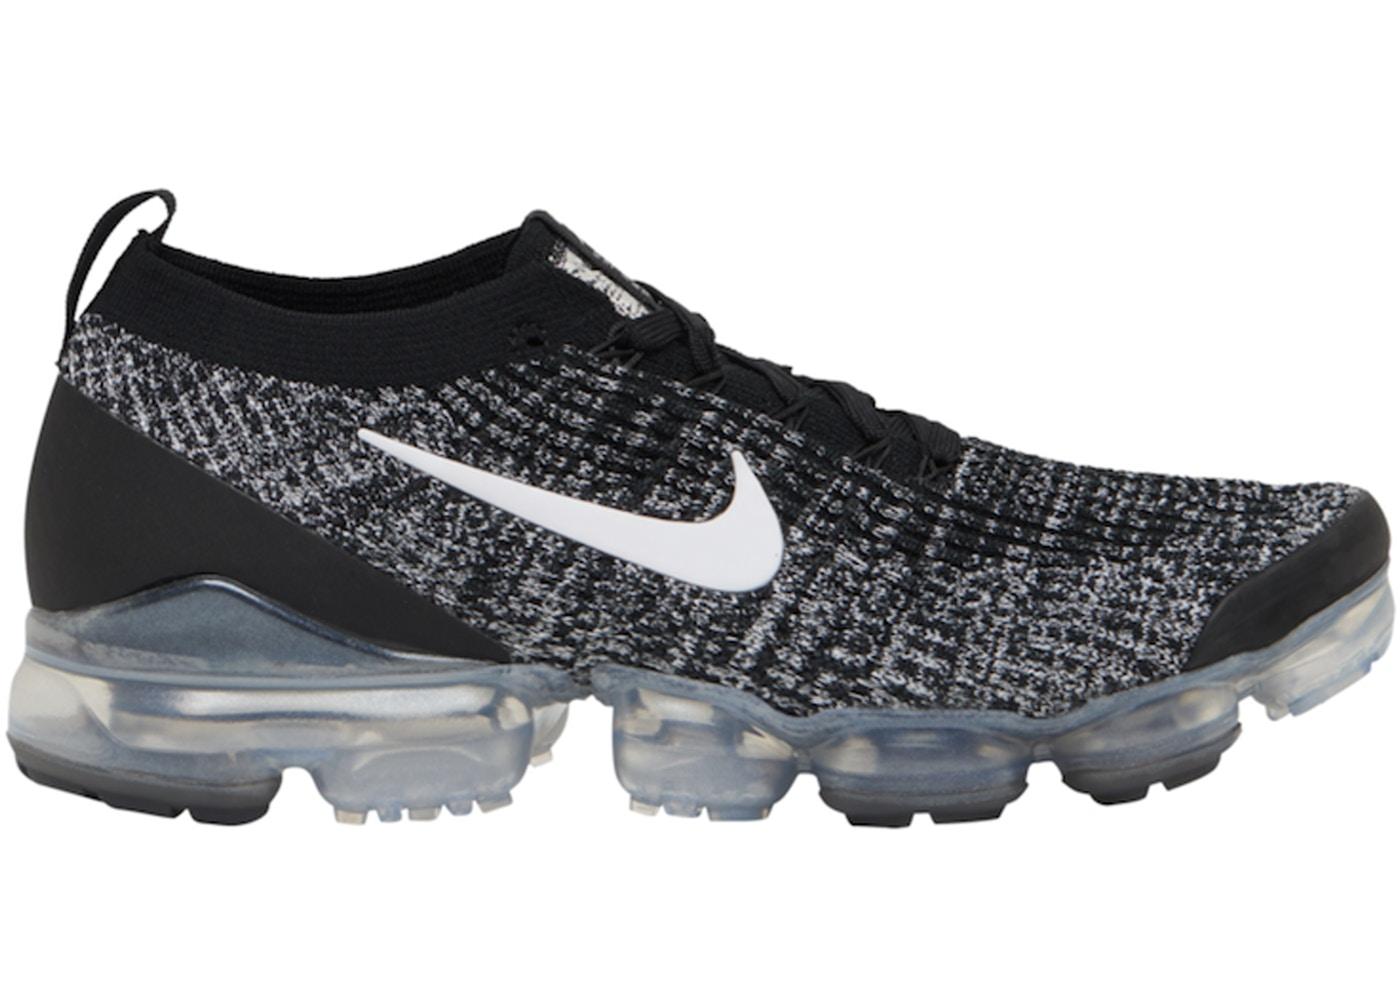 6a57dbc182 Buy Nike Air Max VaporMax Shoes & Deadstock Sneakers